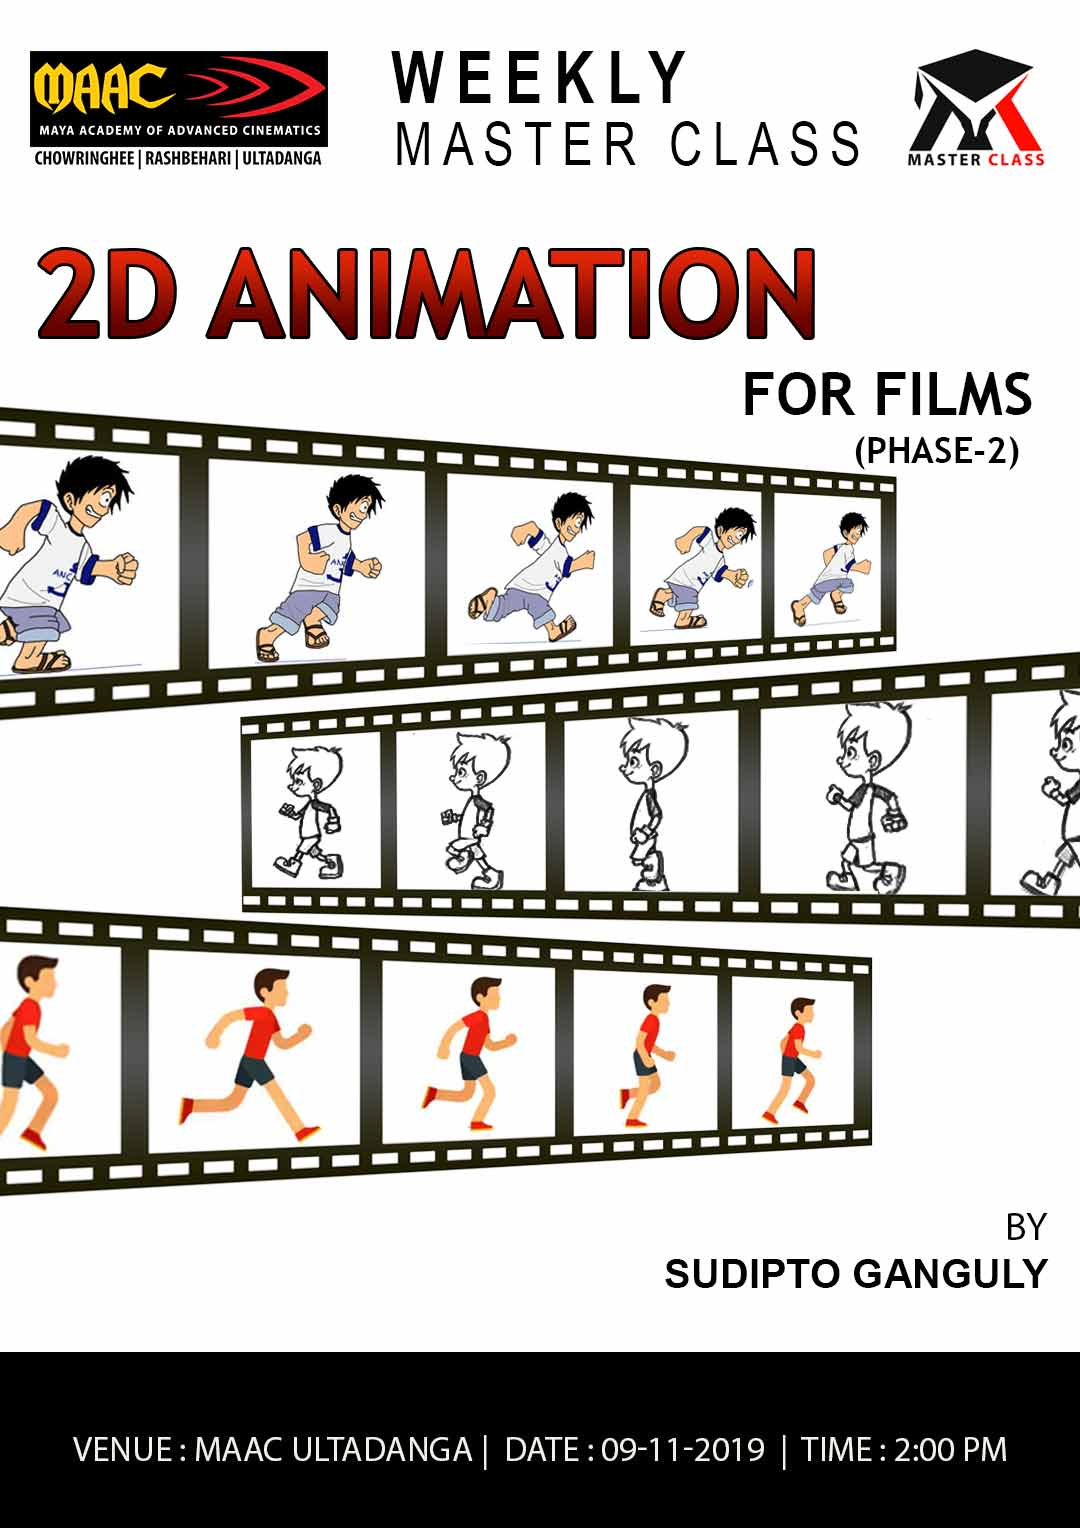 Weekly Master Class on 2D Animation Phase 2